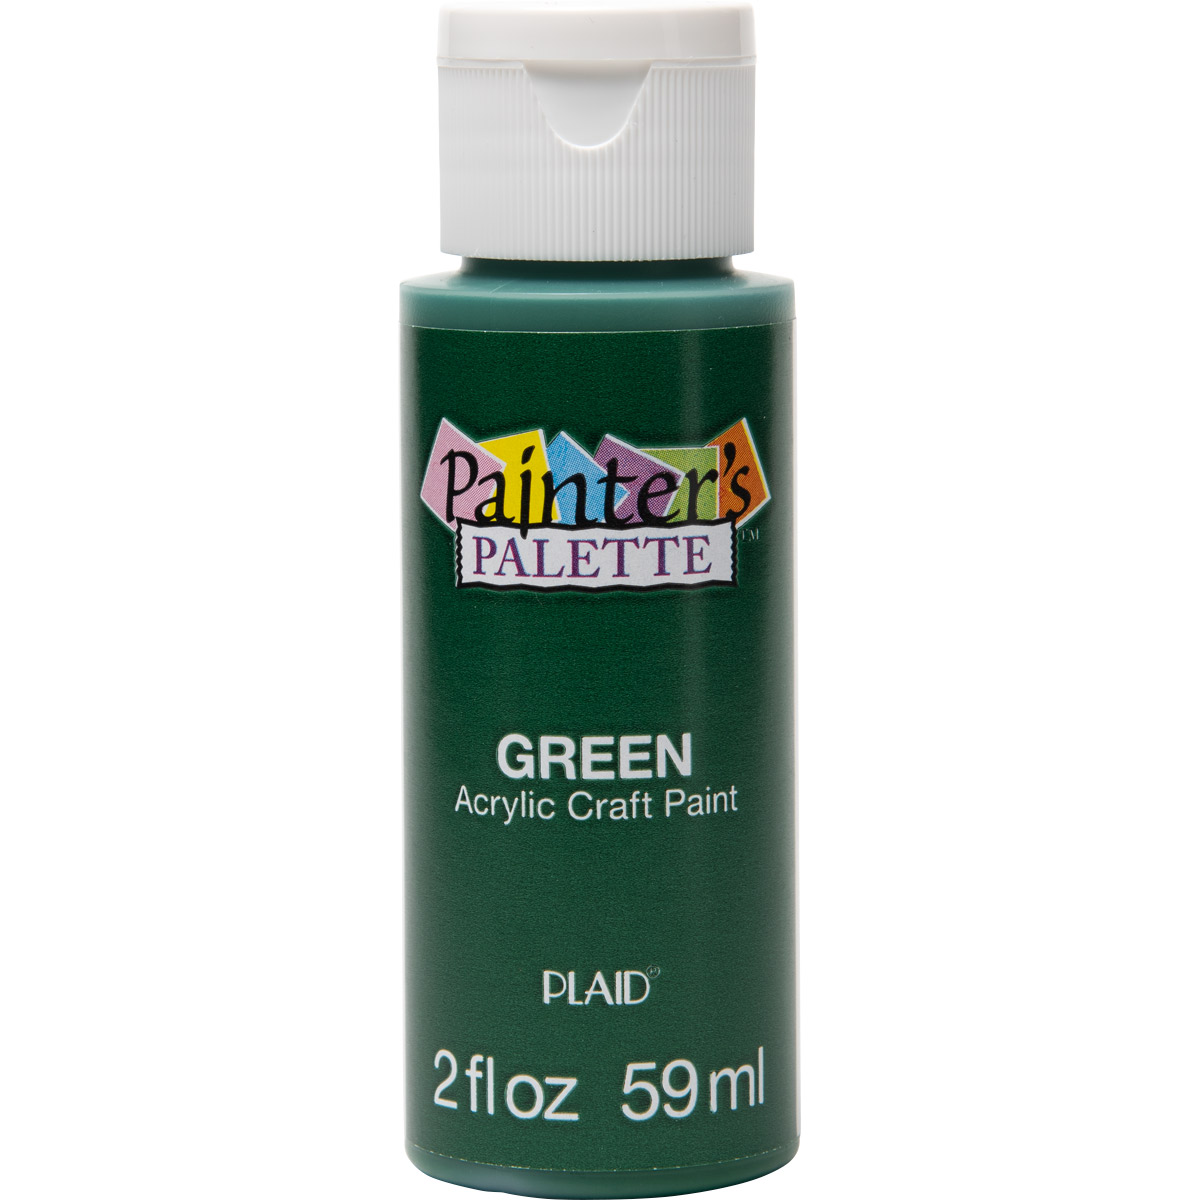 Plaid ® Painter's Palette™ Acrylic Paint - Green, 2 oz. - 23786